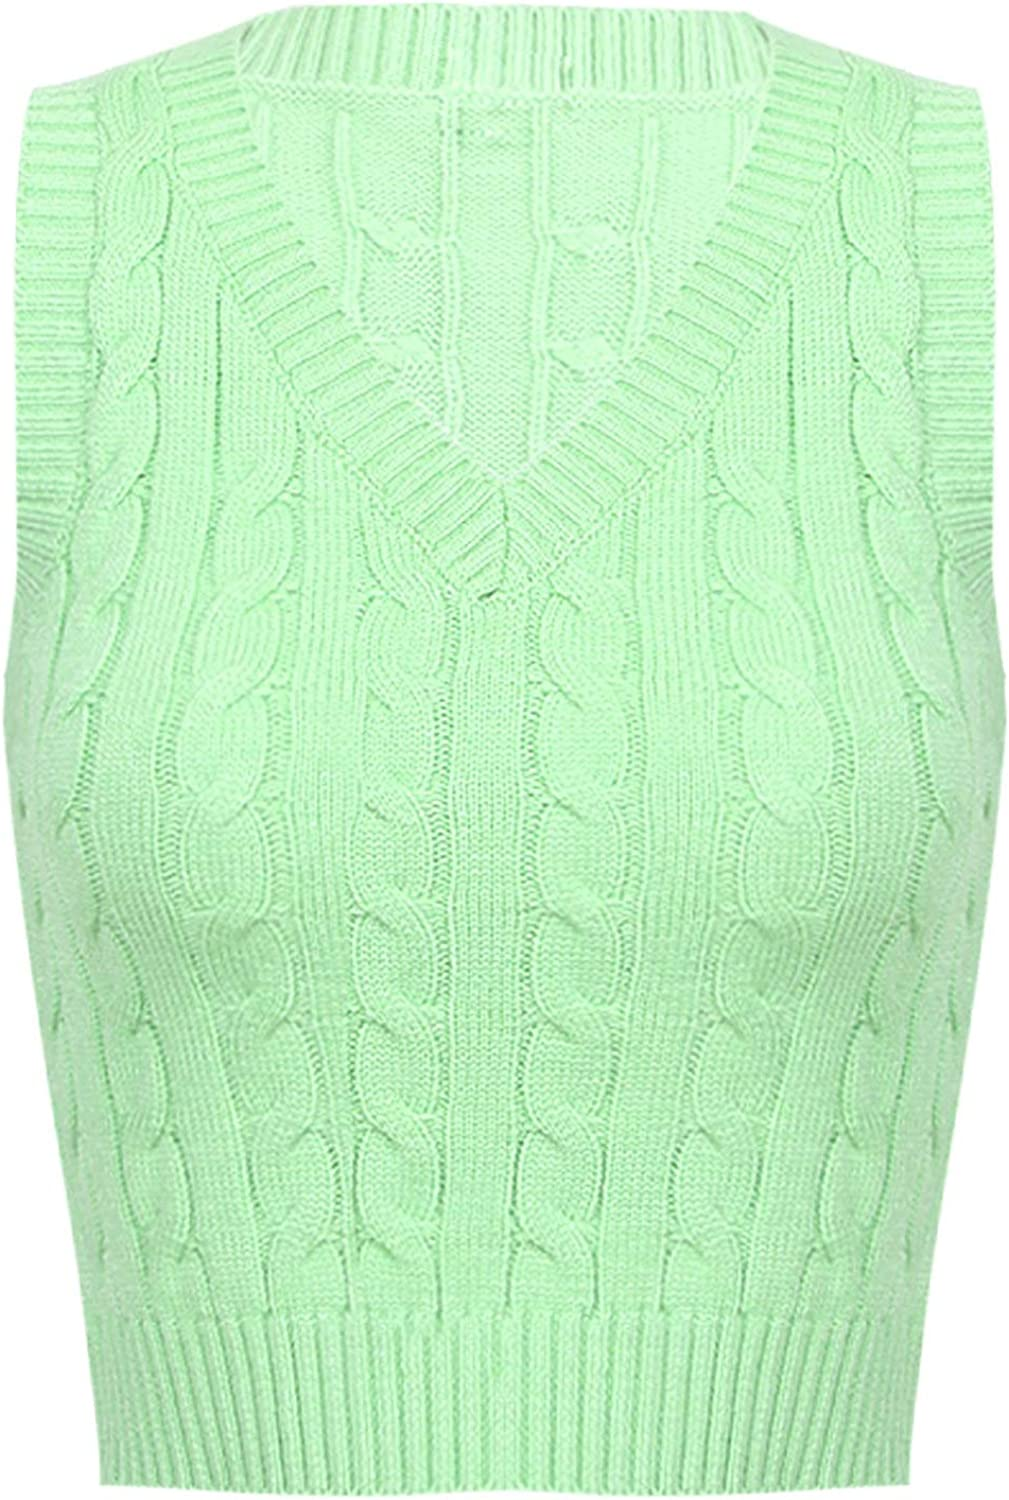 moily Women's Cable Knit Sweater Vest Preppy Style V Neck Sleeveless Sweater Waistcoats Tops